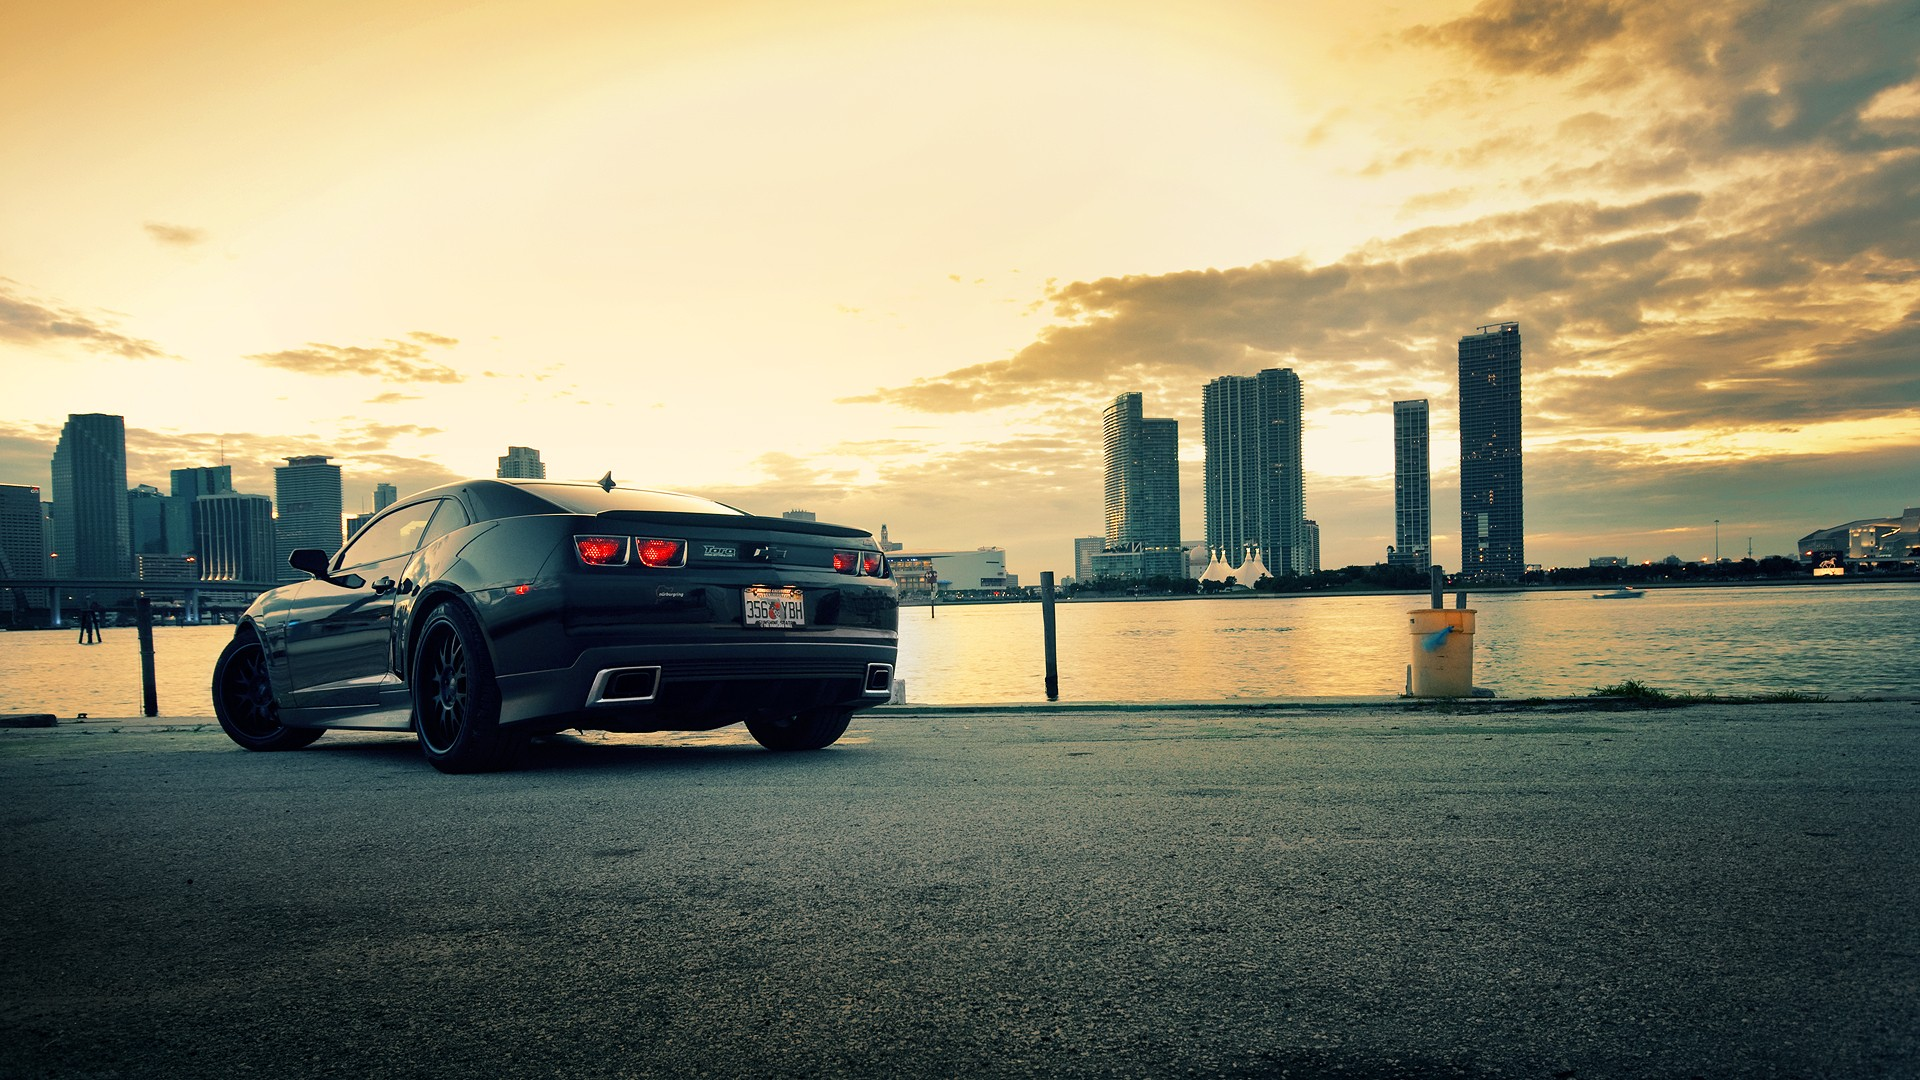 Background Car Hd Wallpapers Cities: Chevrolet Camaro Wallpapers High Quality